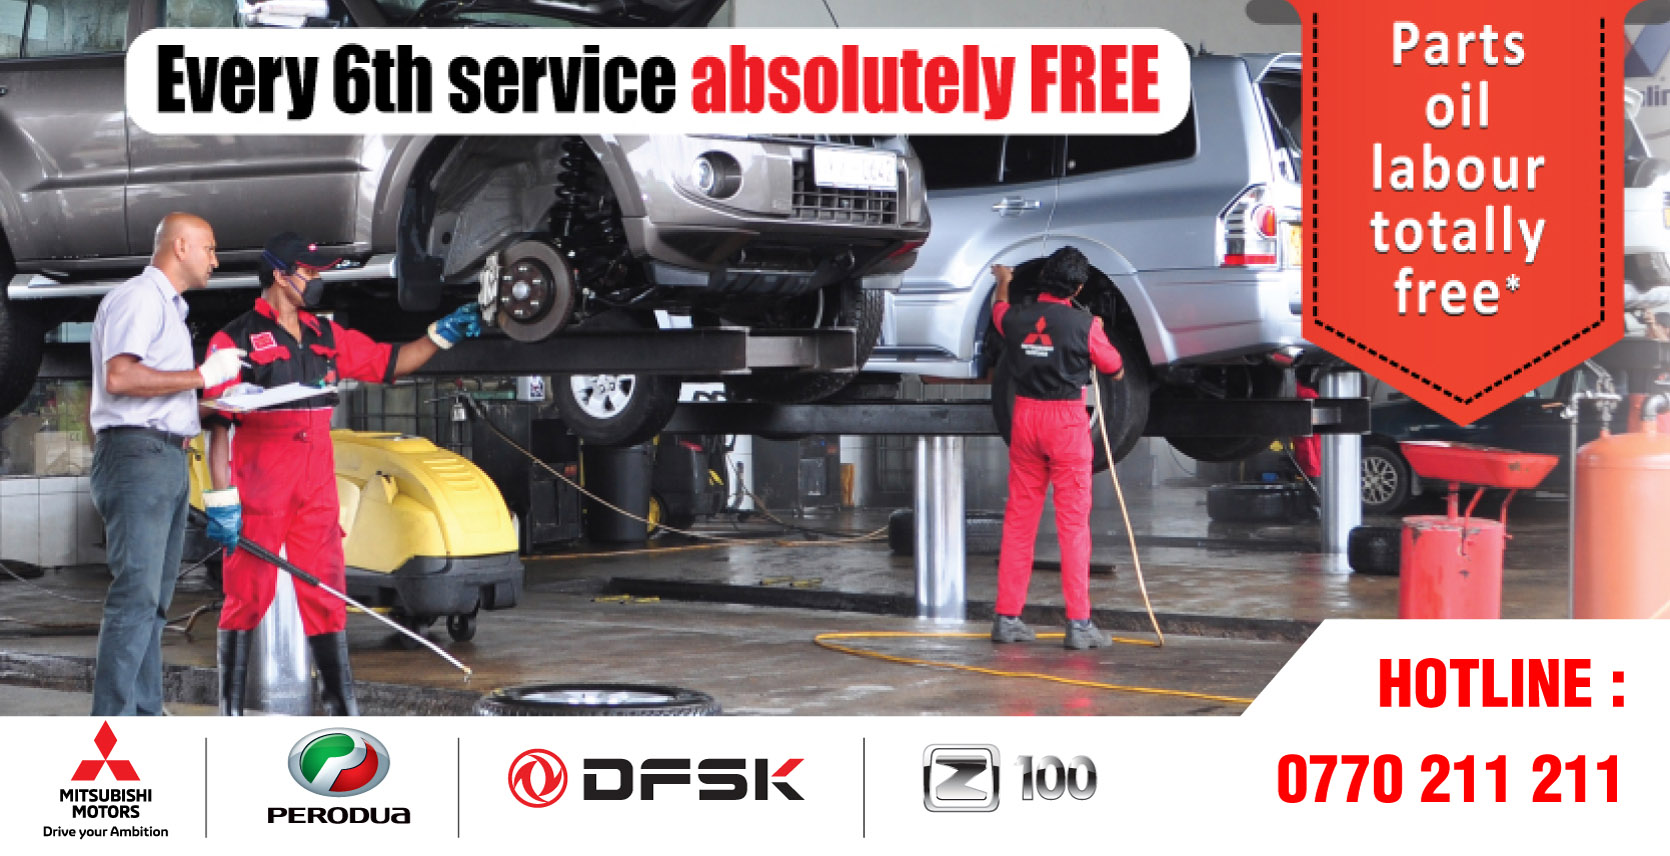 Image for Get your 6th service absolutely free